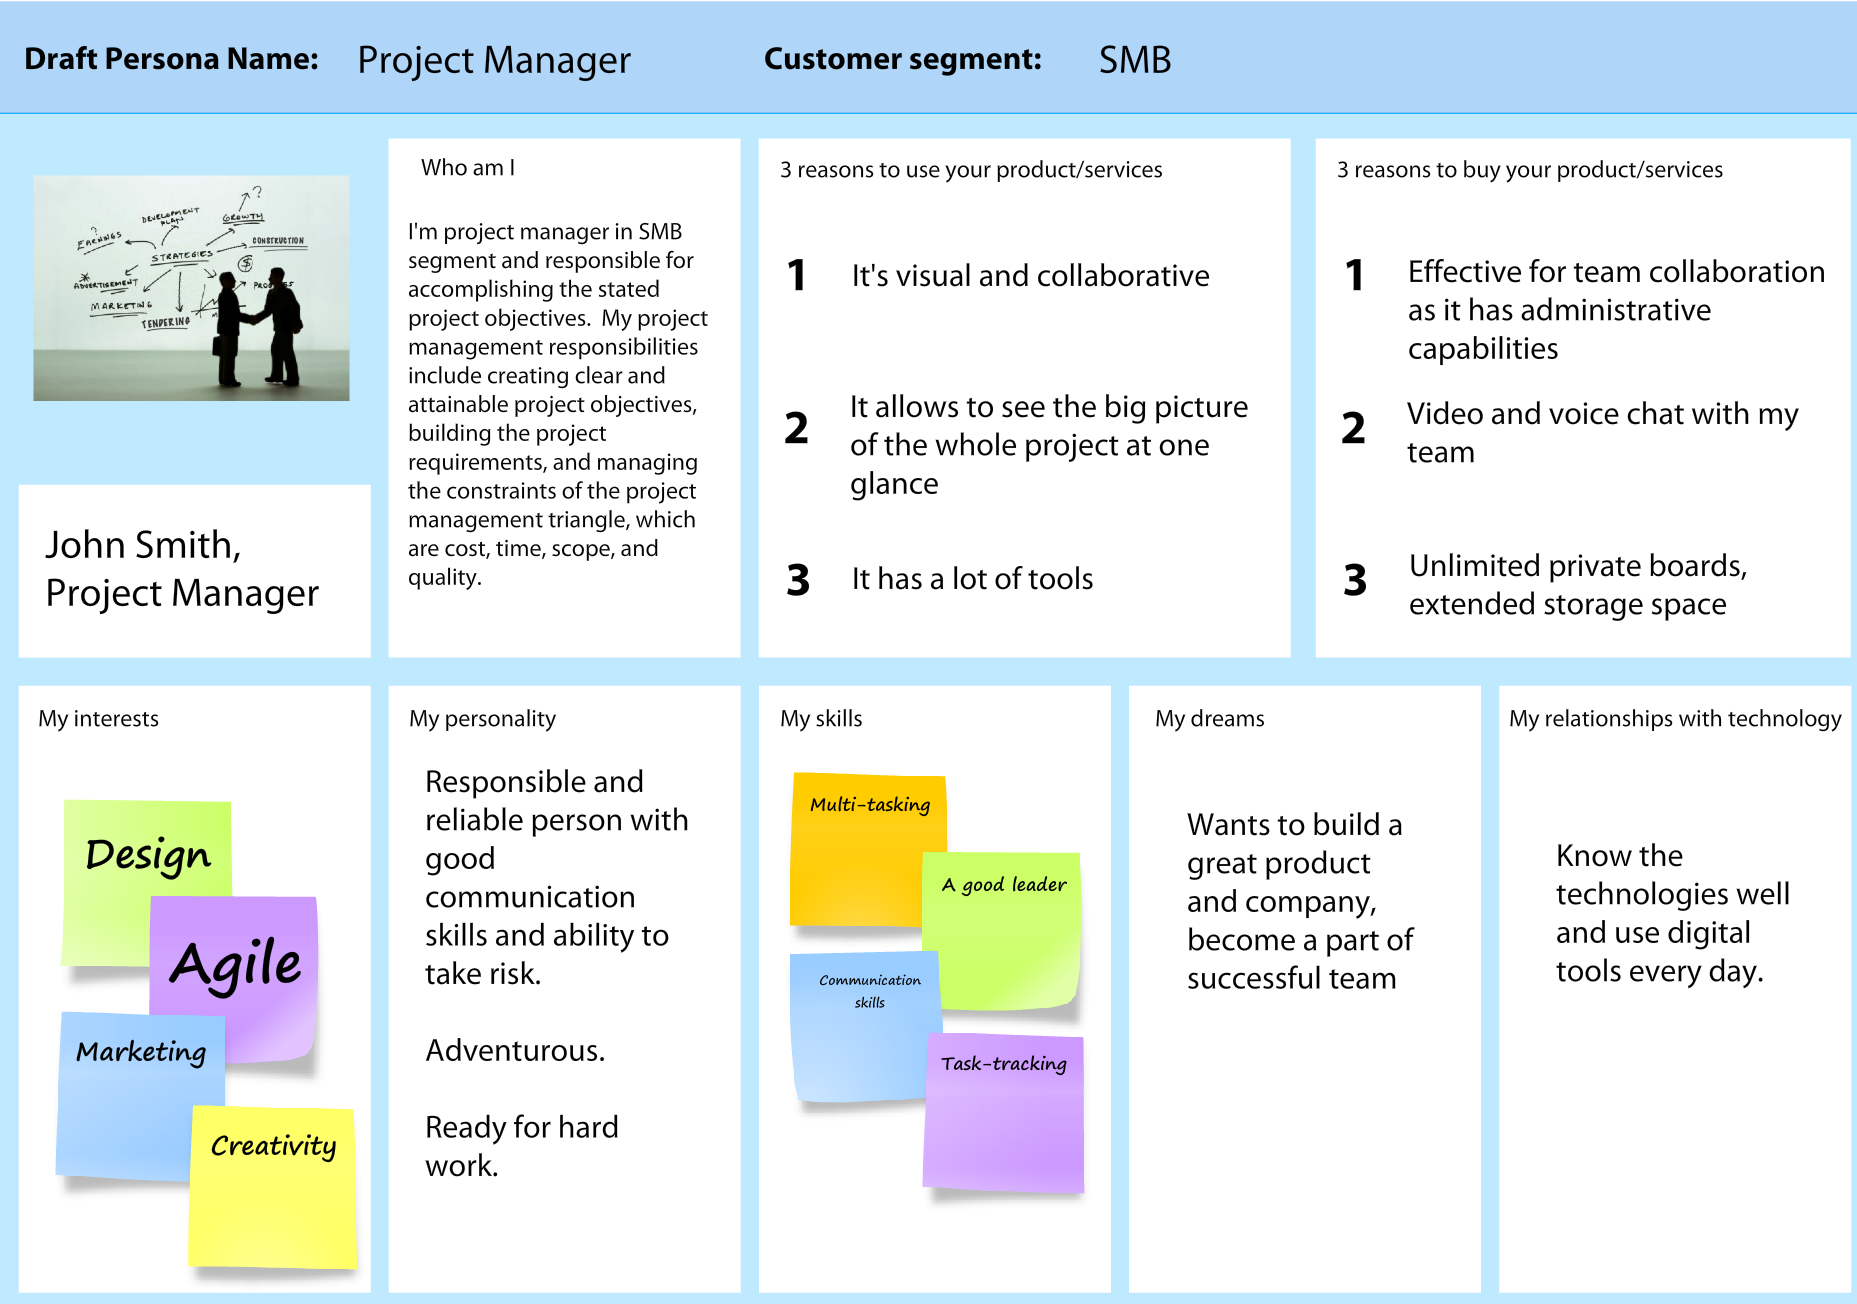 new templates for service design personas and service blueprint